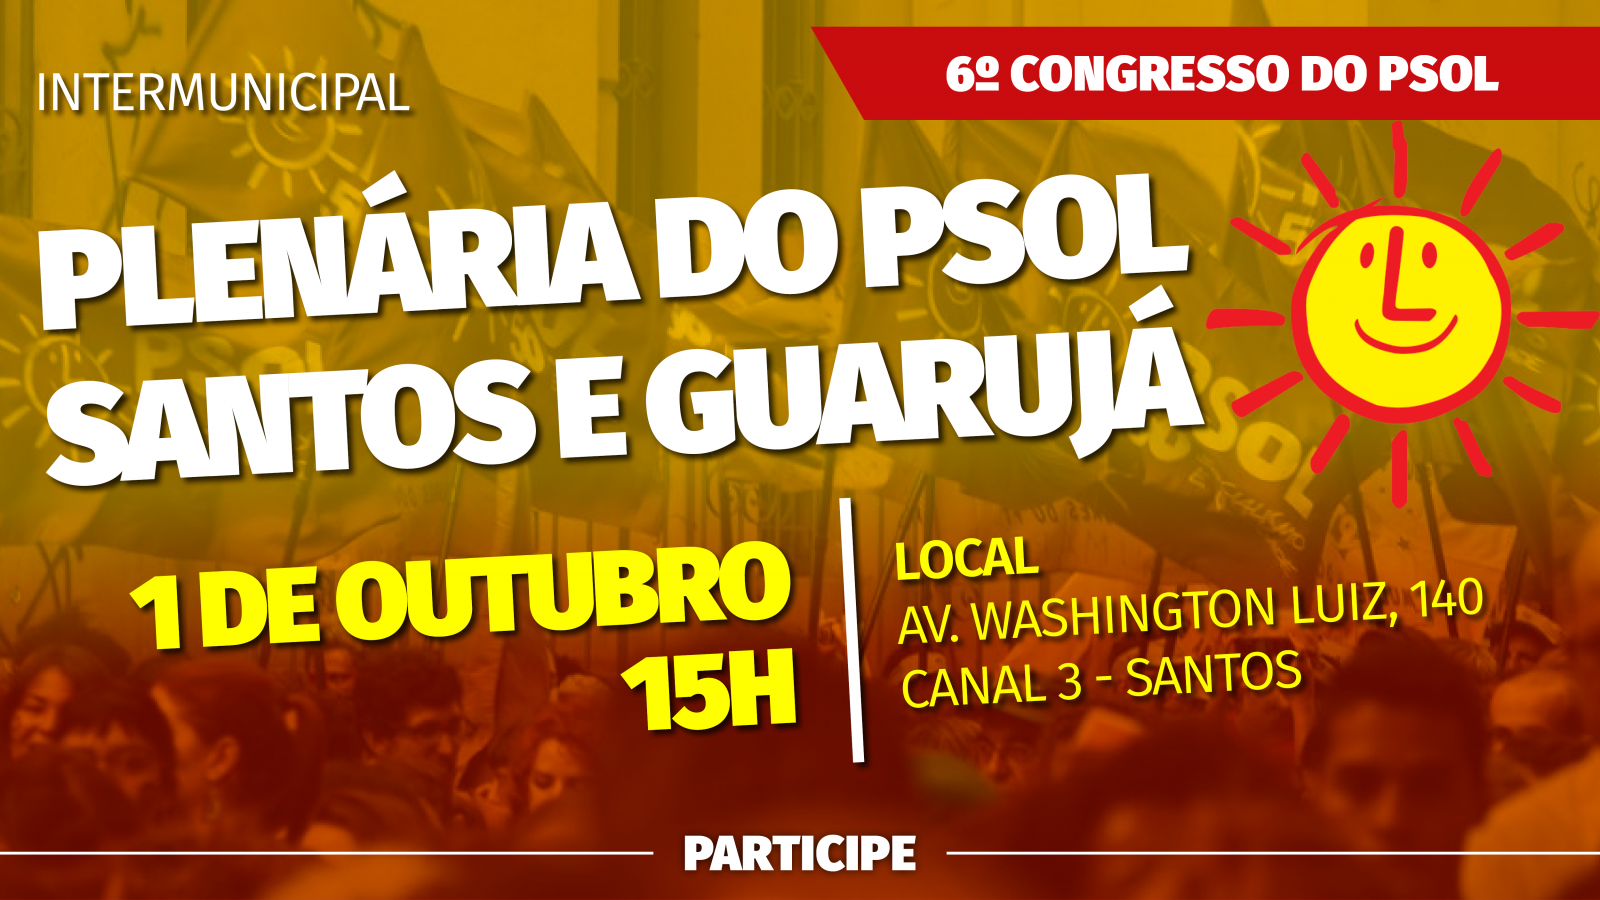 [Plenária intermunicipal do PSOL Santos e Guarujá no domingo(1/10)]